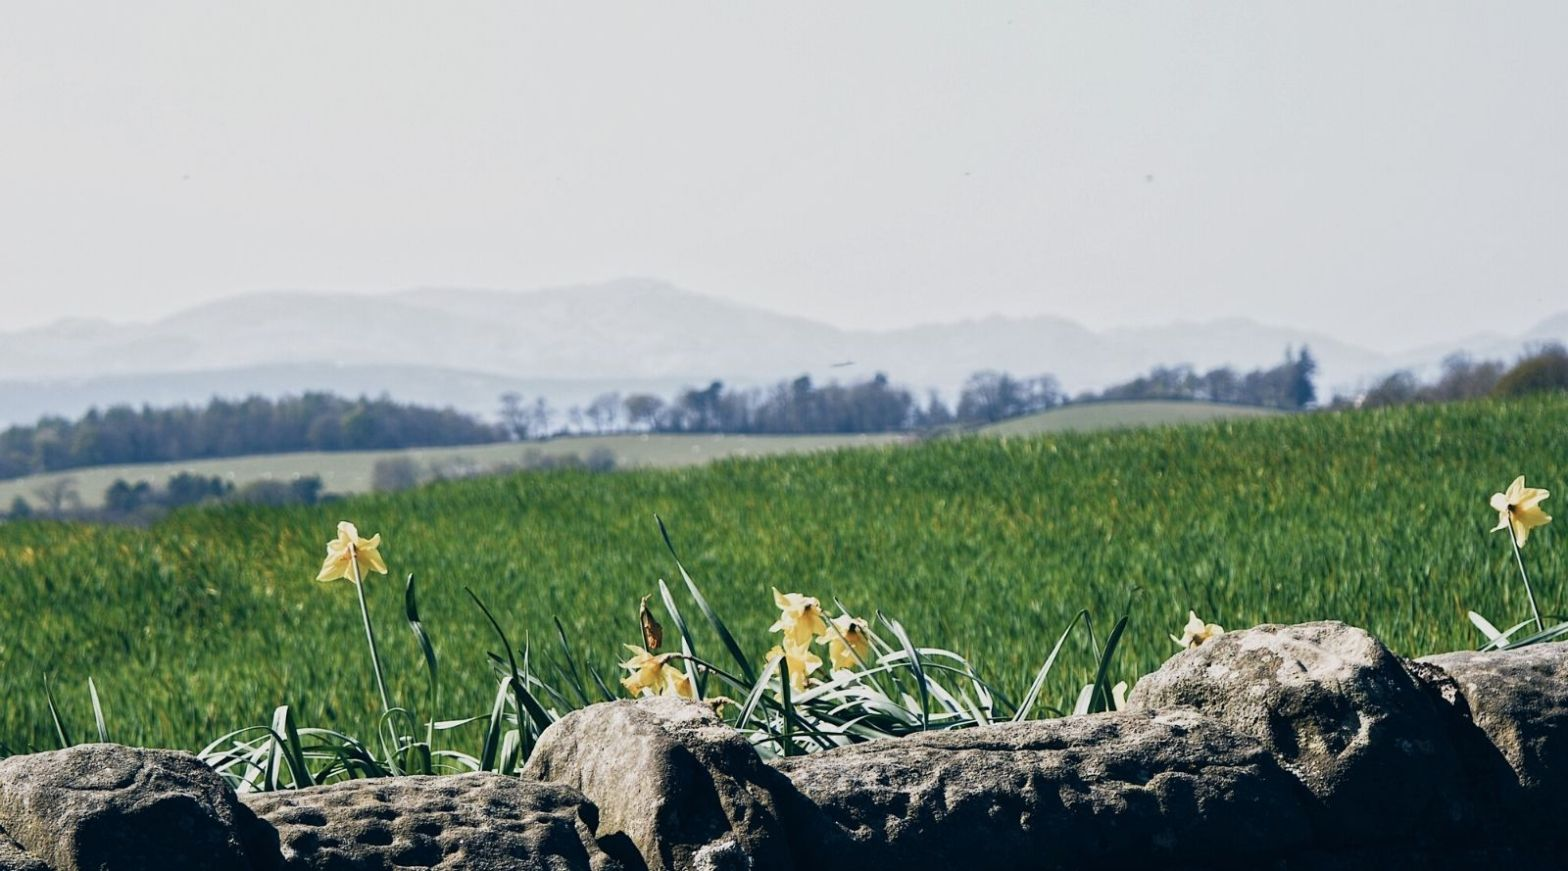 Daffodils behind a wall, with a view to hills on the horizon